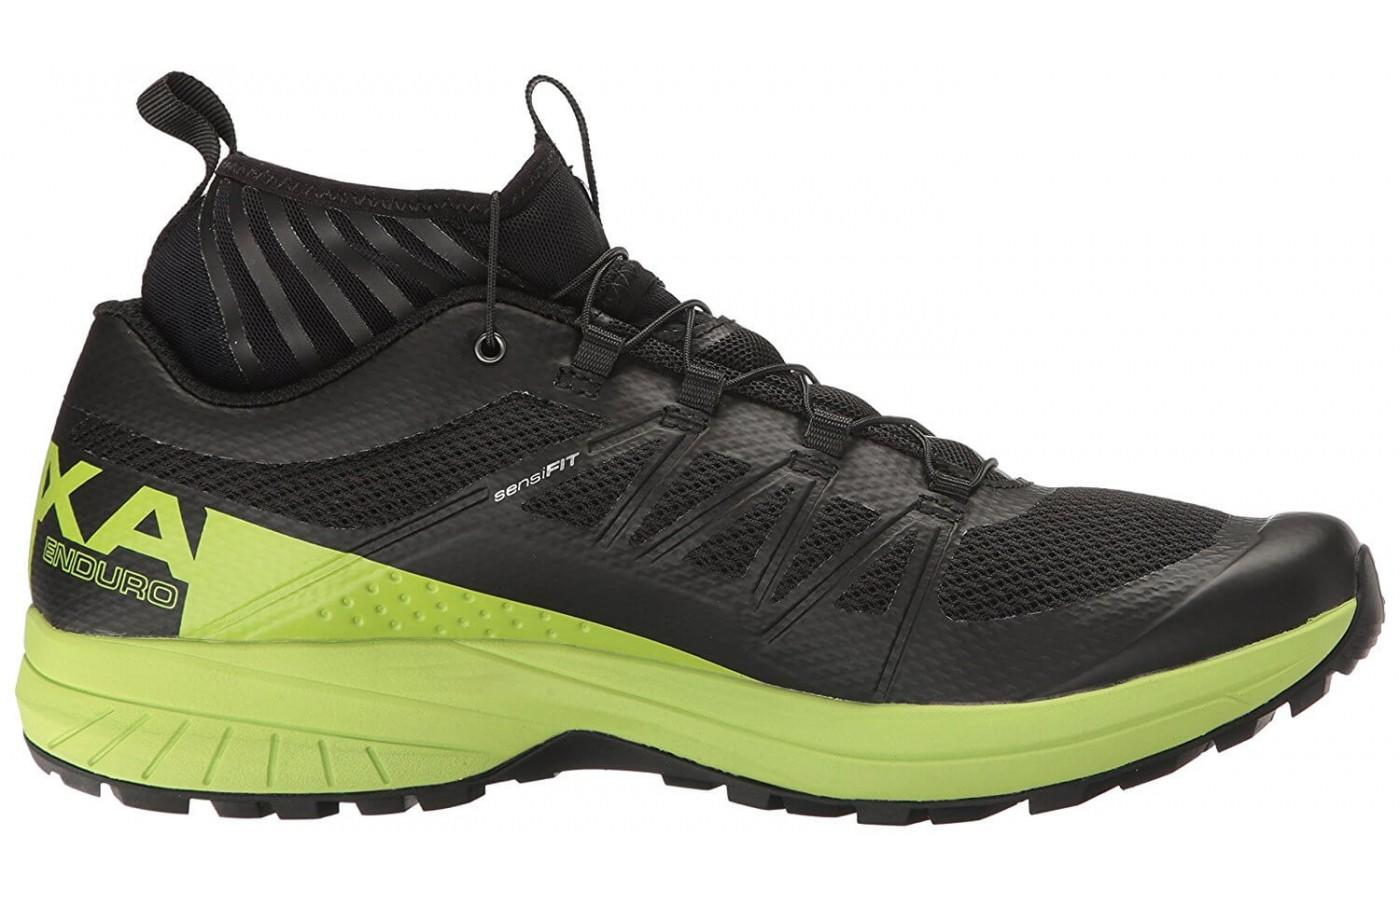 This shoe comes with a built in gaiter.